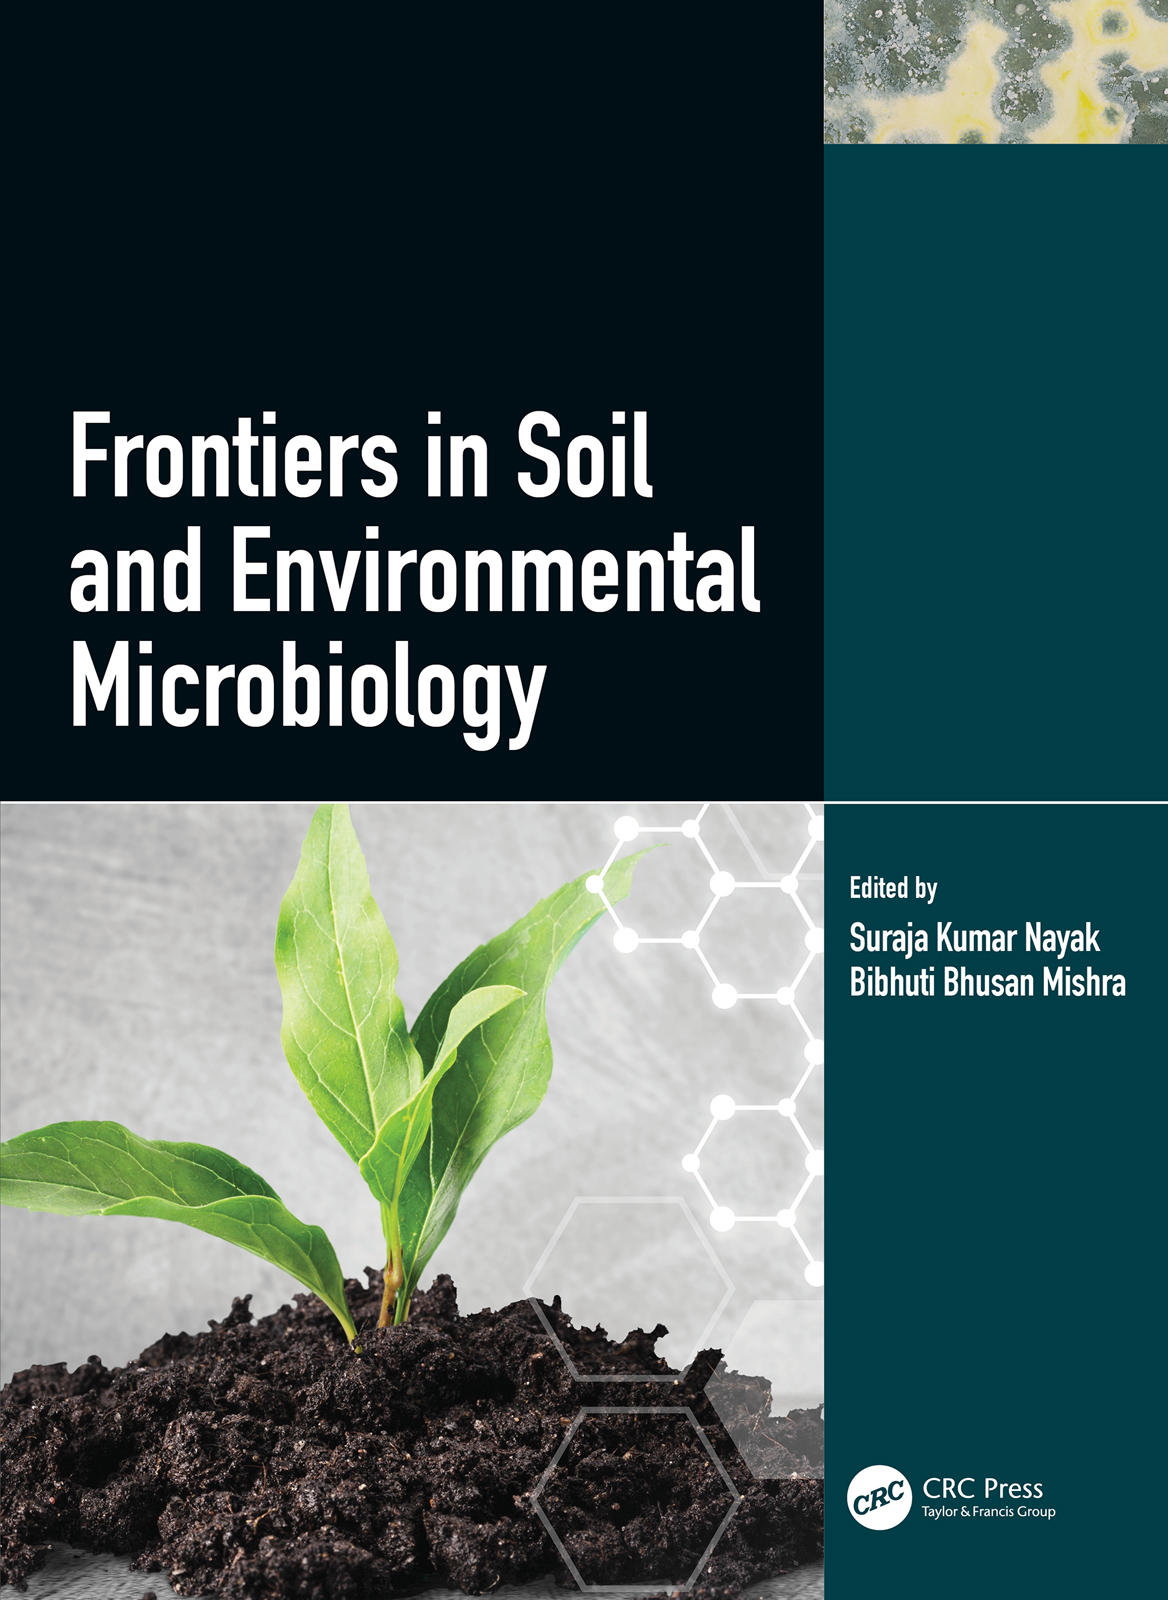 Frontiers in Soil and Environmental Microbiology book cover